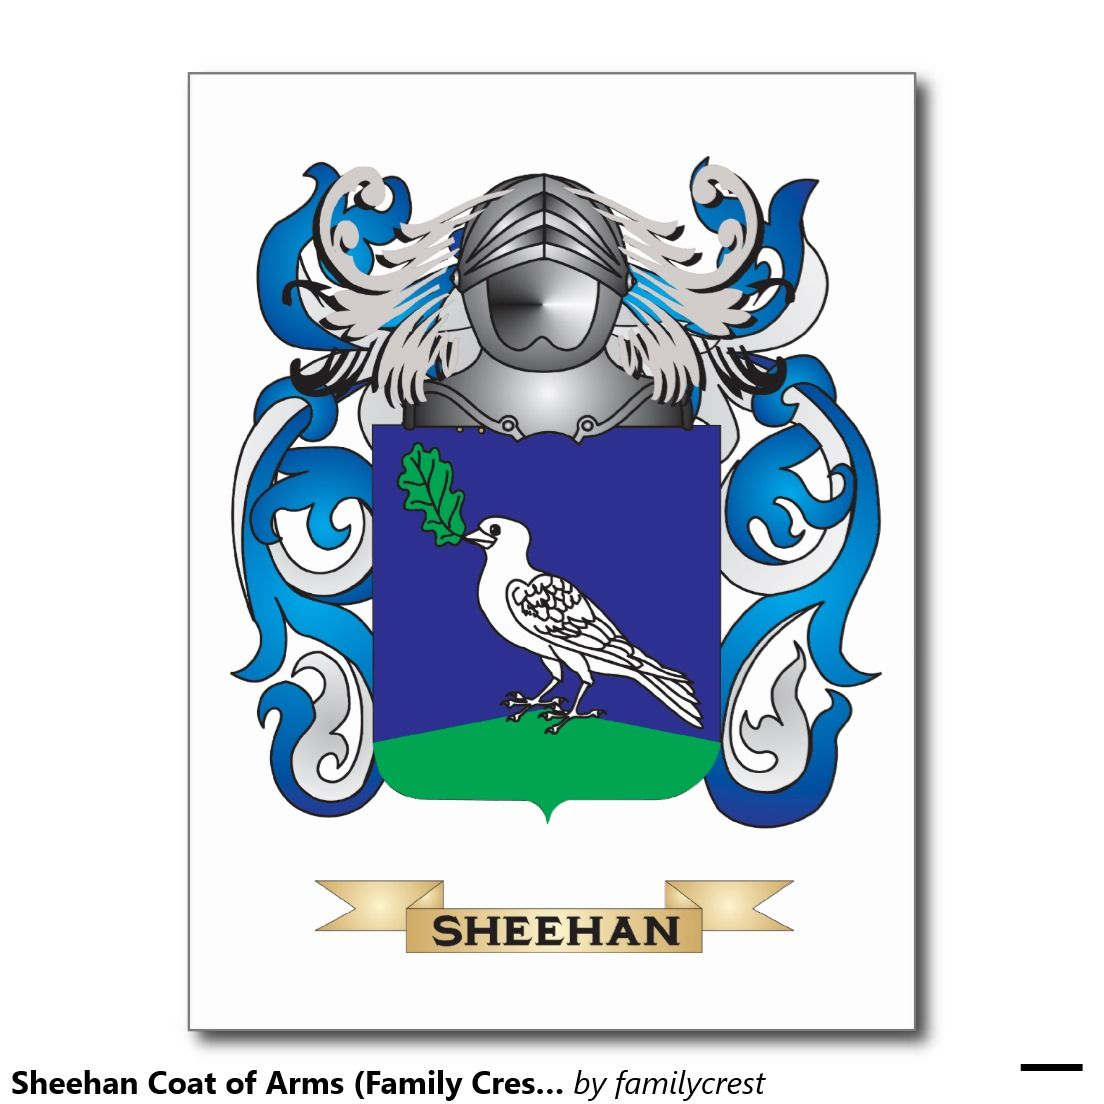 Sheehan coat of arms family crest postcard gift ideas sheehan coat of arms family crest postcard biocorpaavc